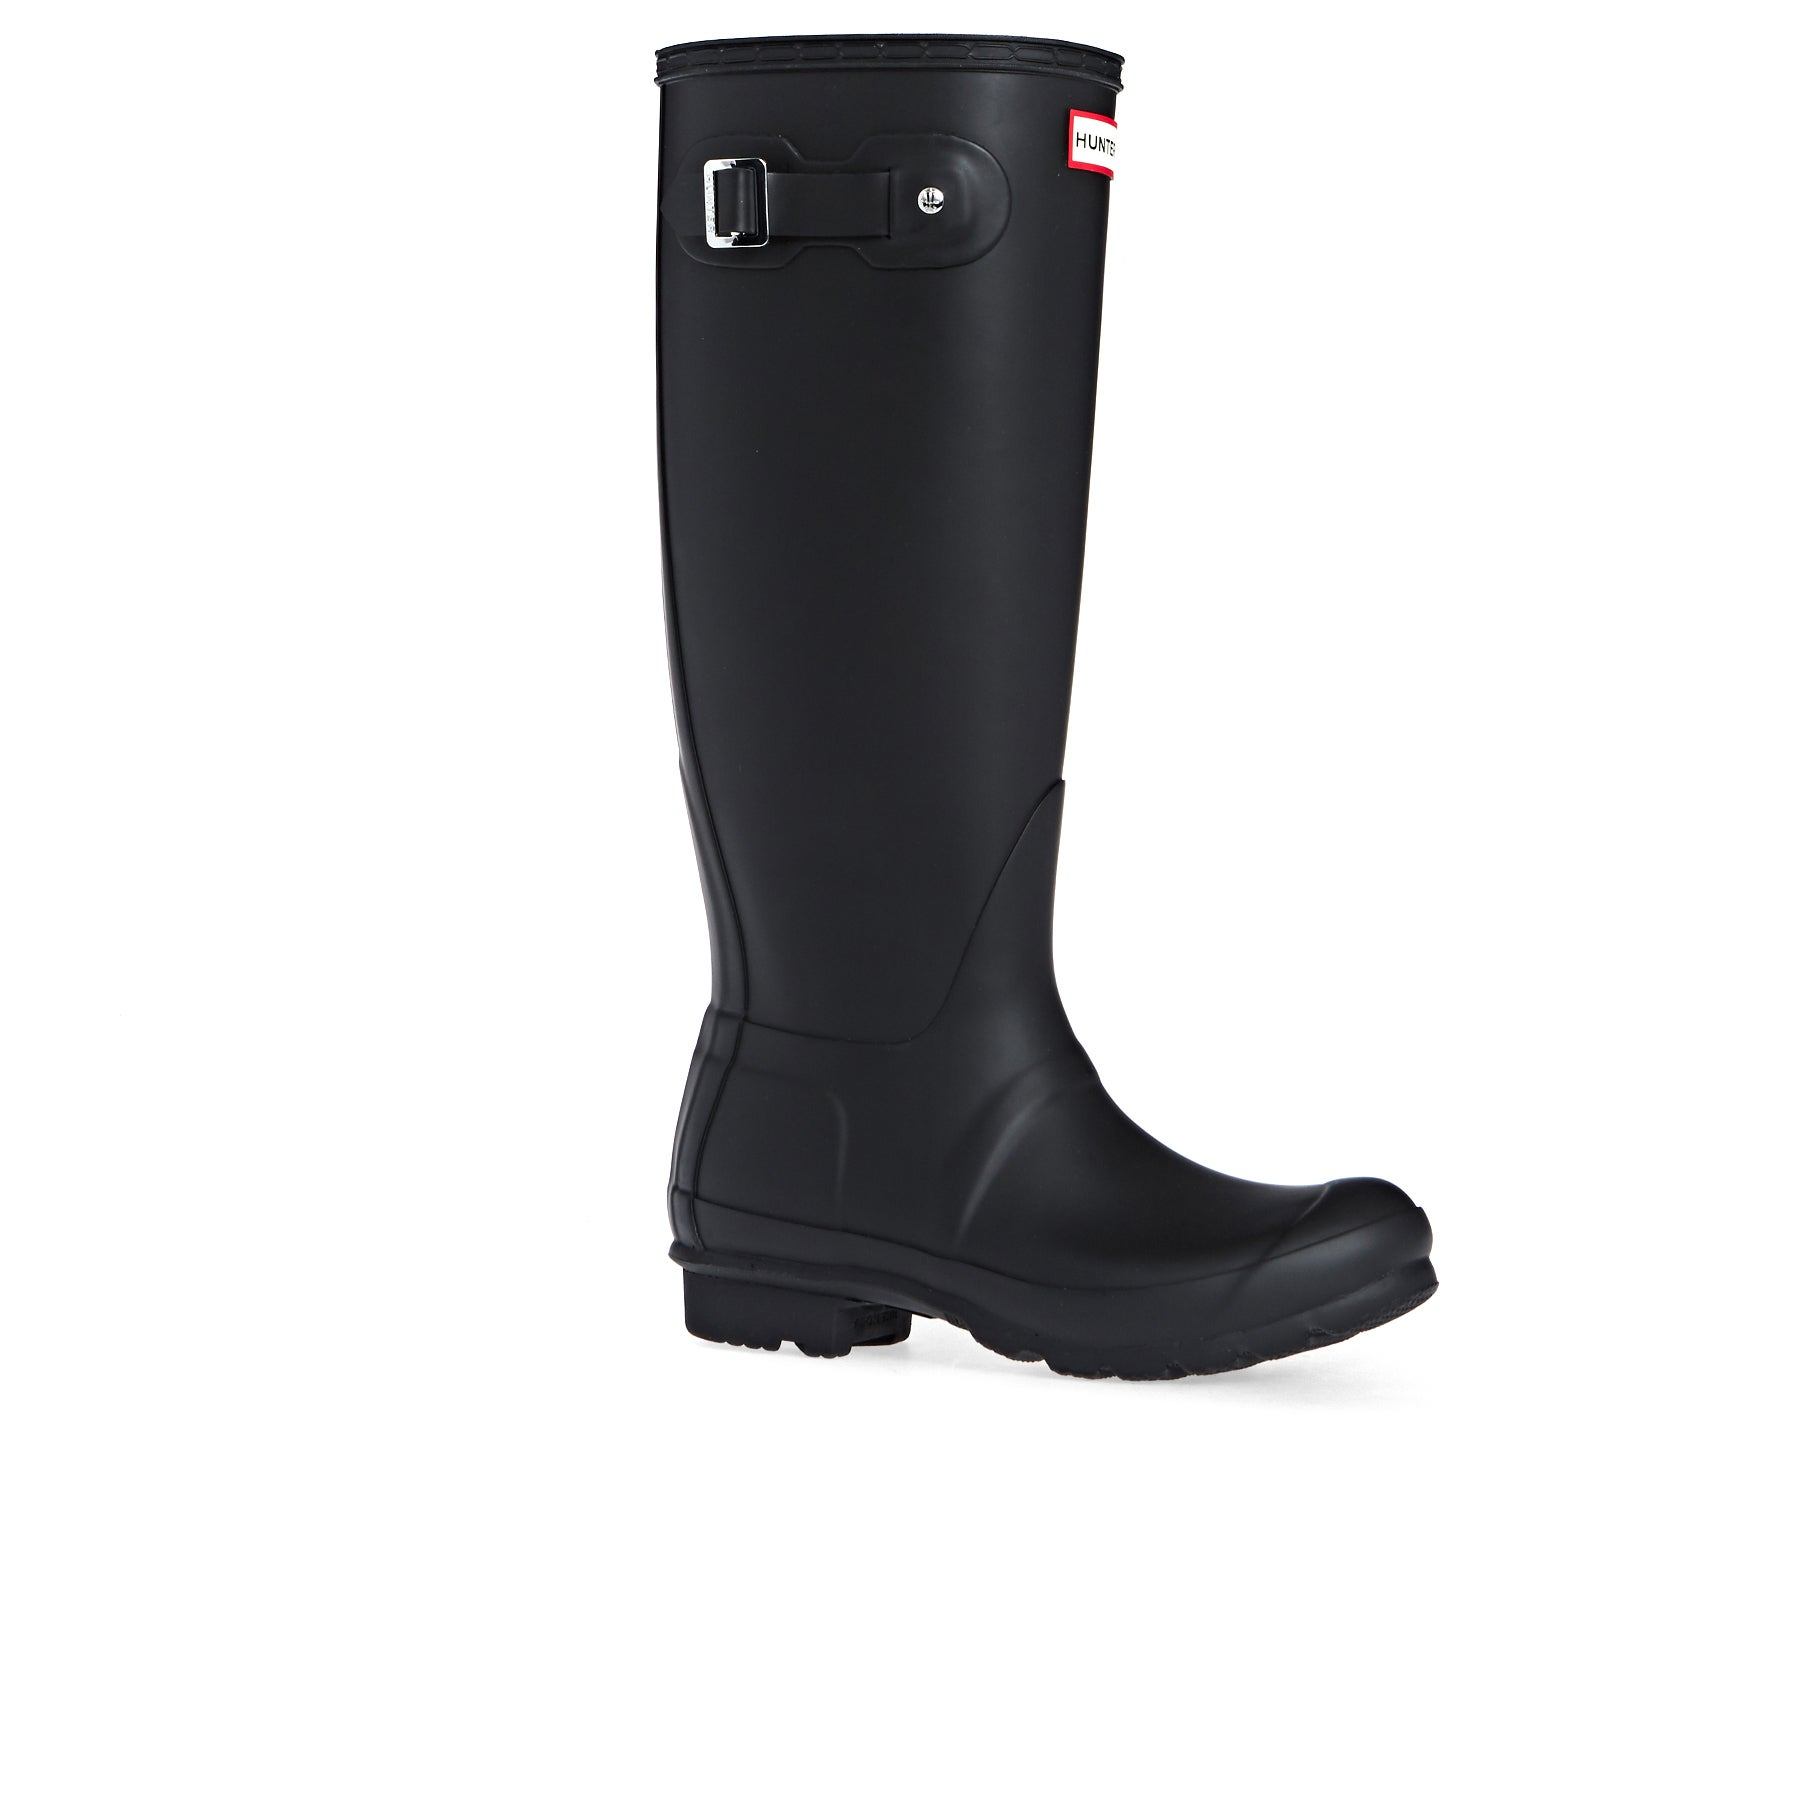 1087cb0e1cb67 Hunter Original Tall Womens Wellies available from Surfdome